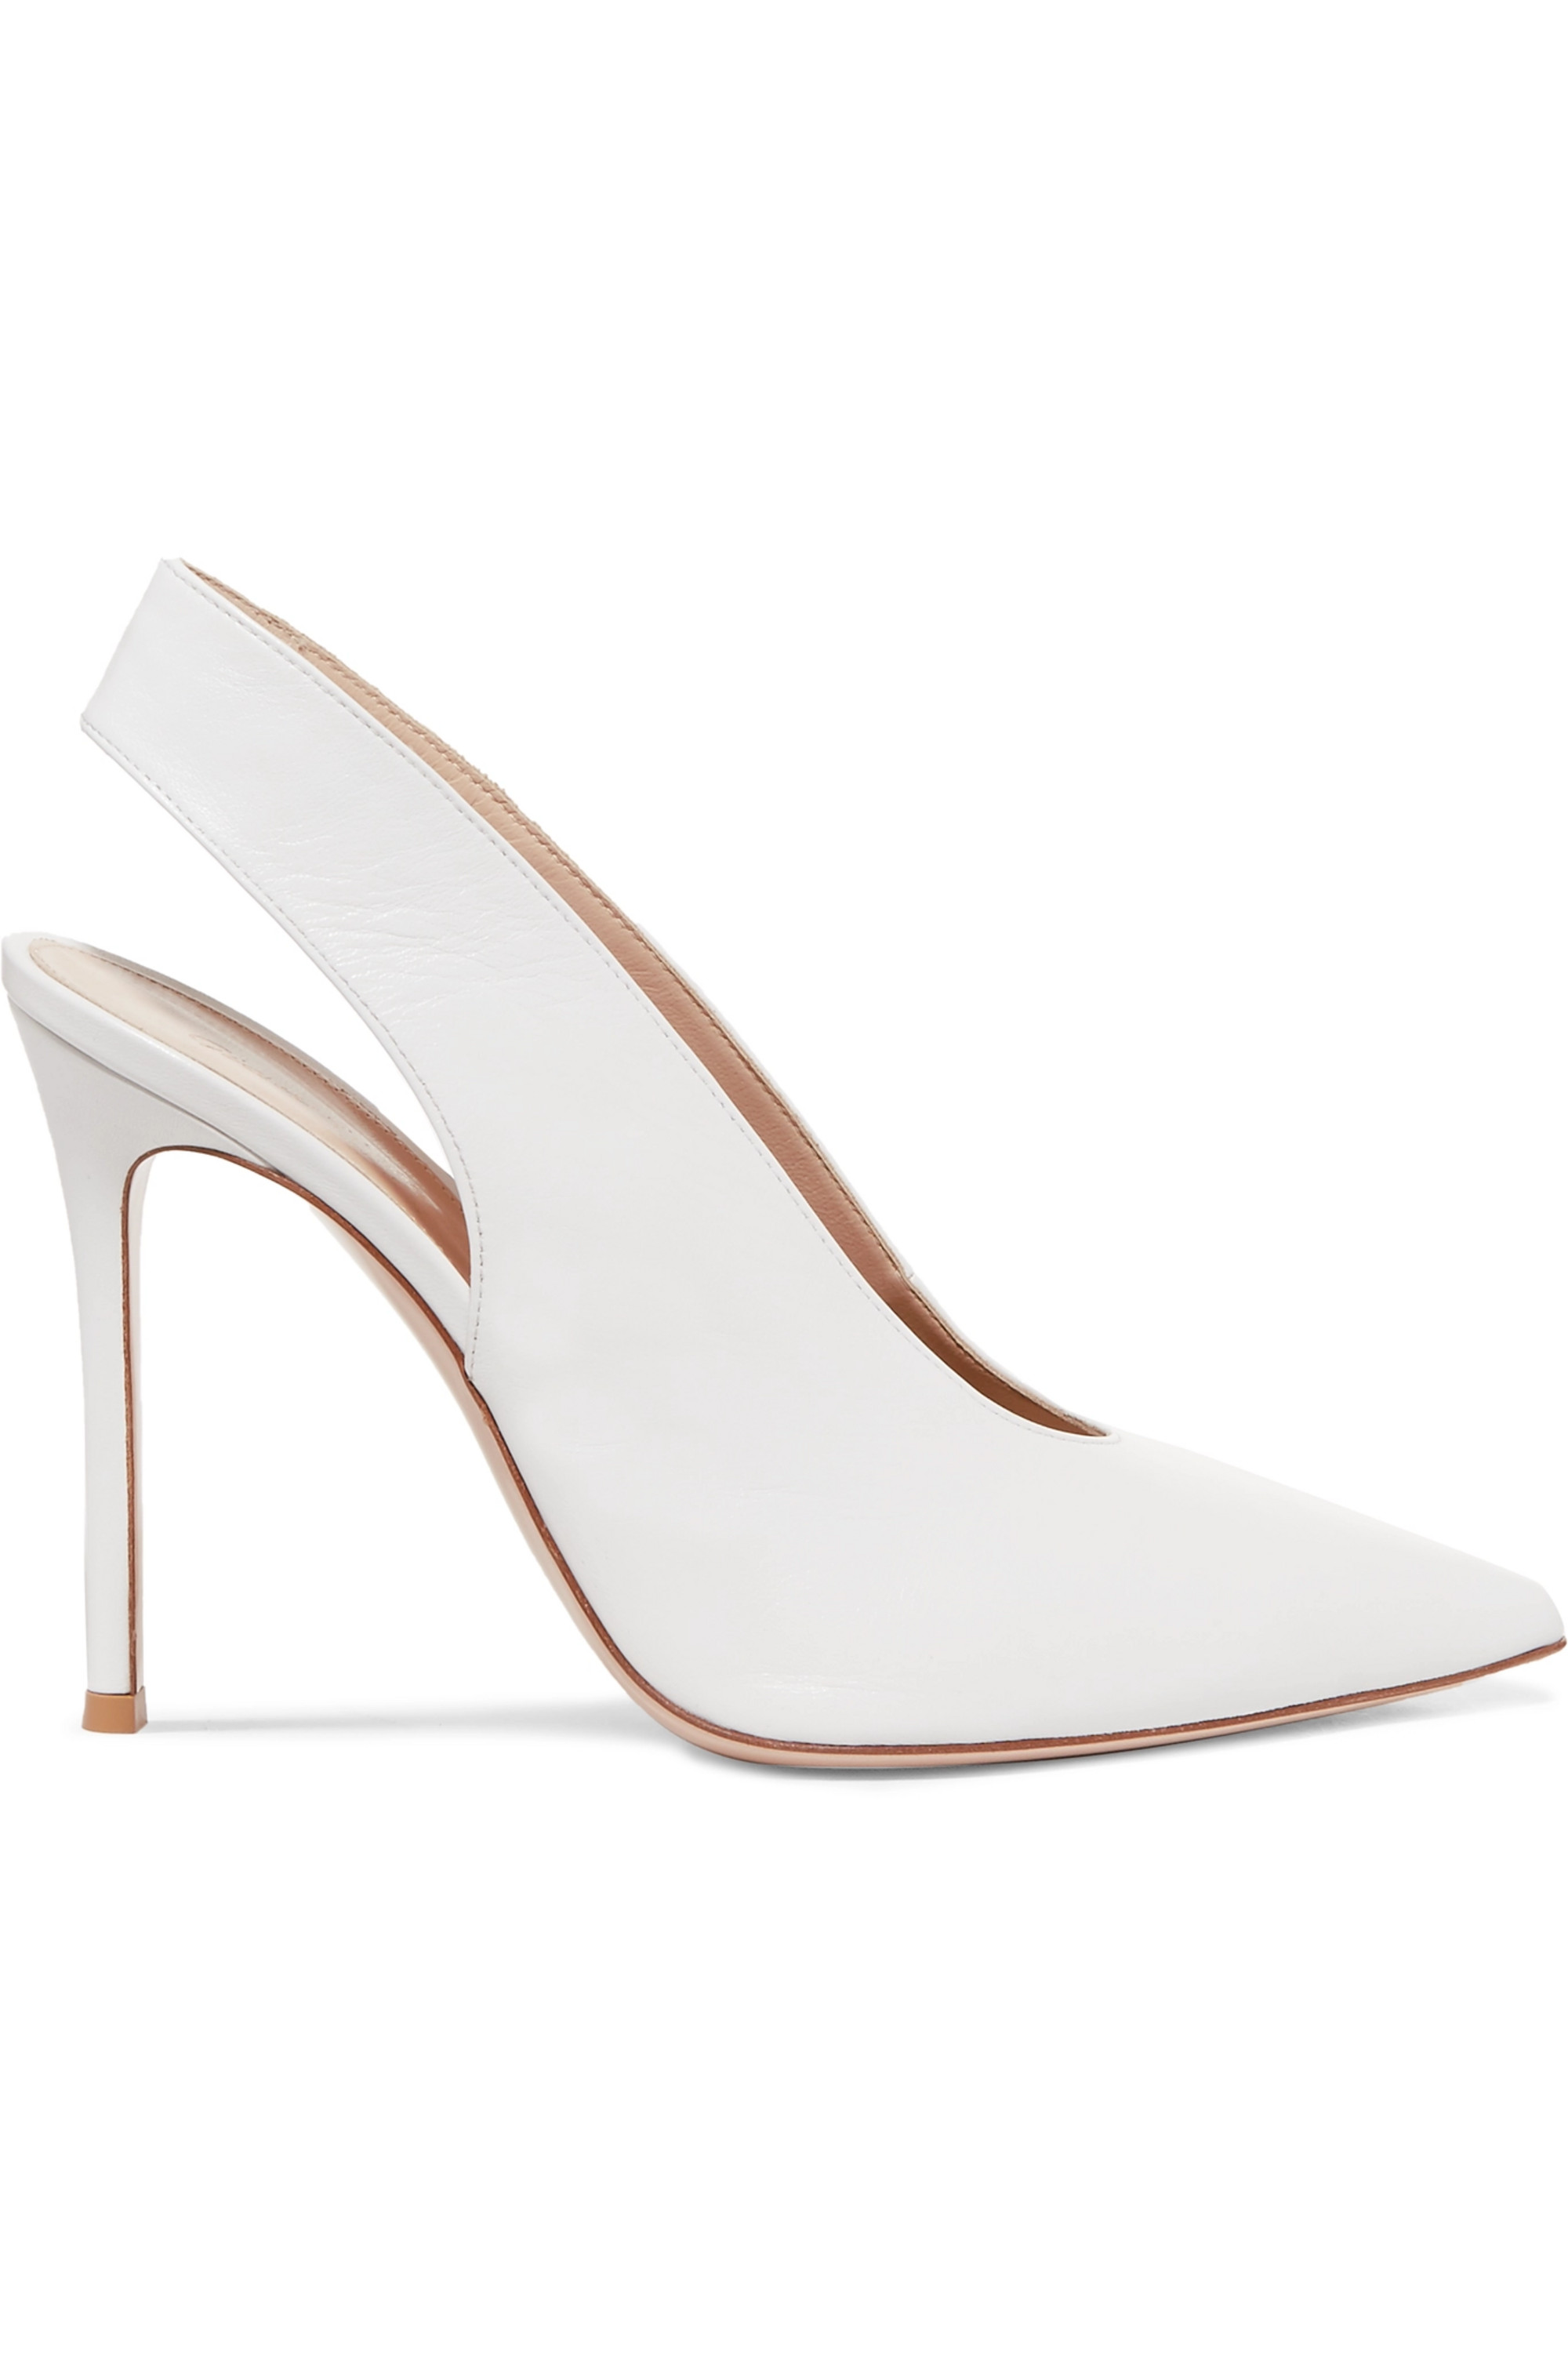 White 100 leather slingback pumps